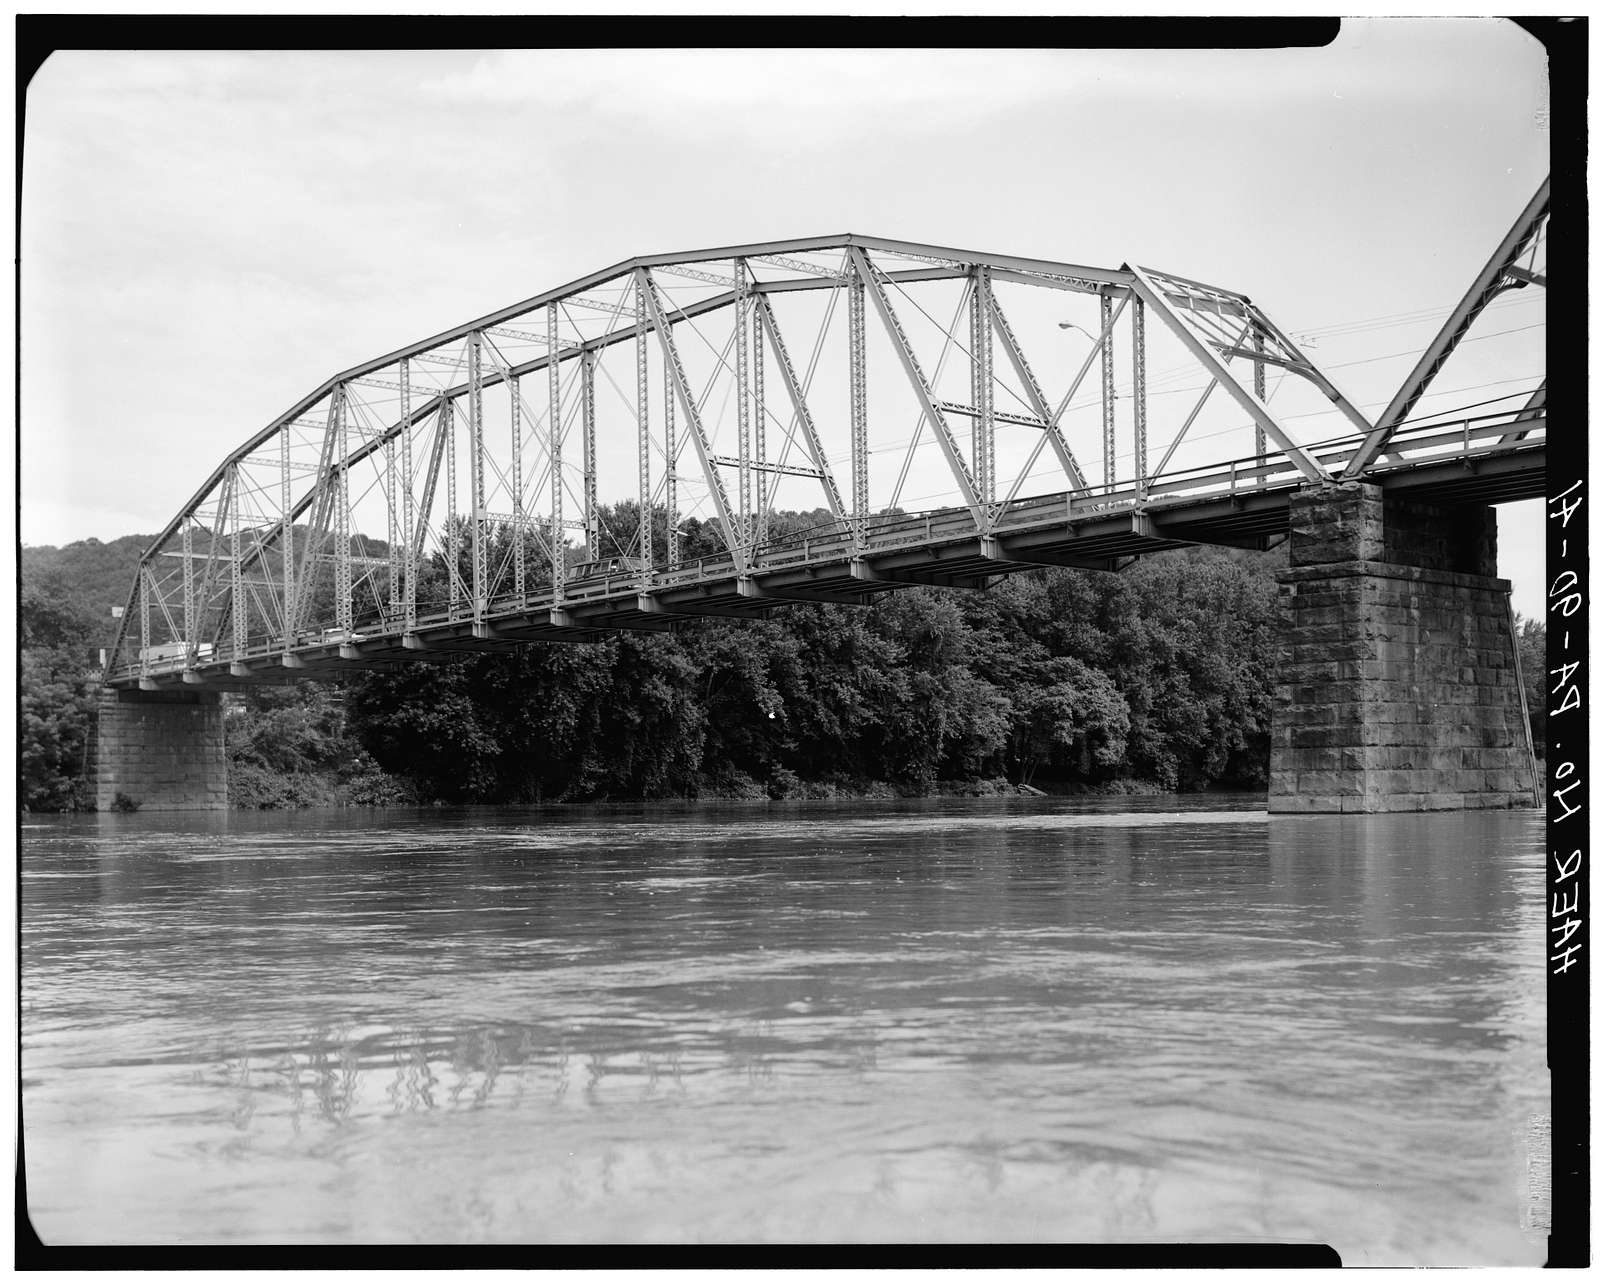 Catawissa Bridge, Spanning north branch of Susquehanna River, 3.5 miles south of Bloomsburg, Catawissa, Columbia County, PA